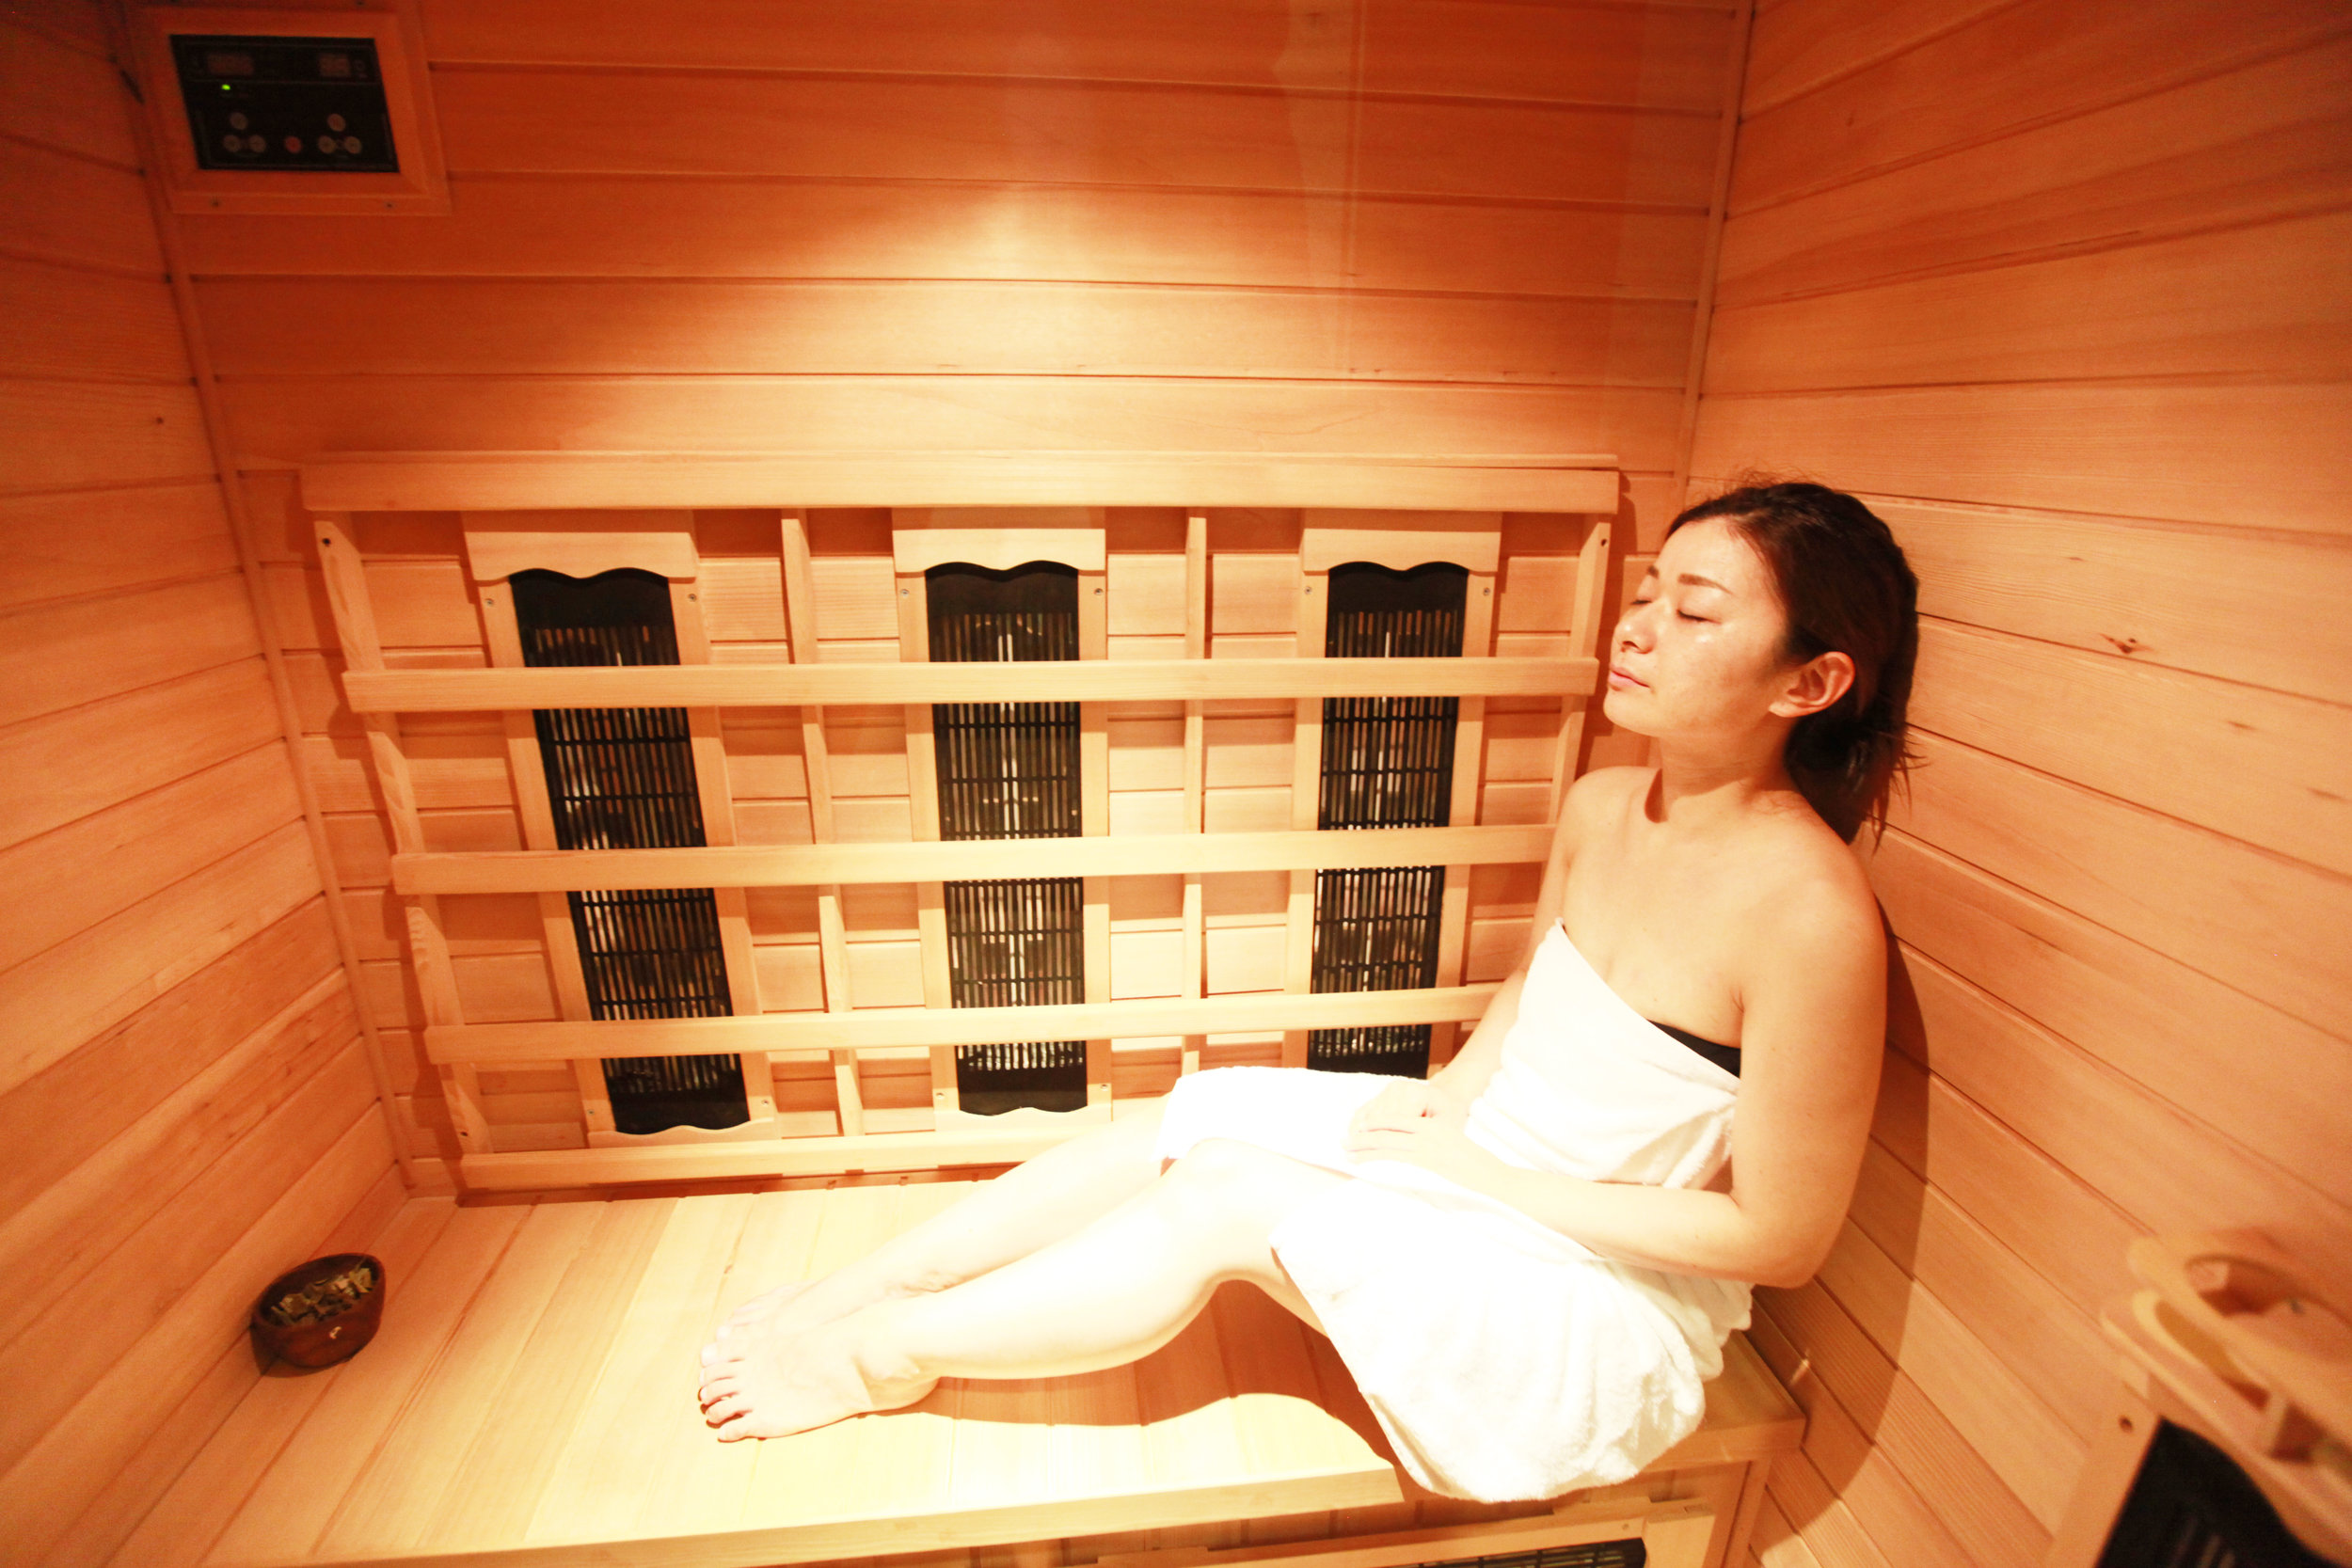 Sometimes, the best thing to do is just to call it a day and go for a sauna